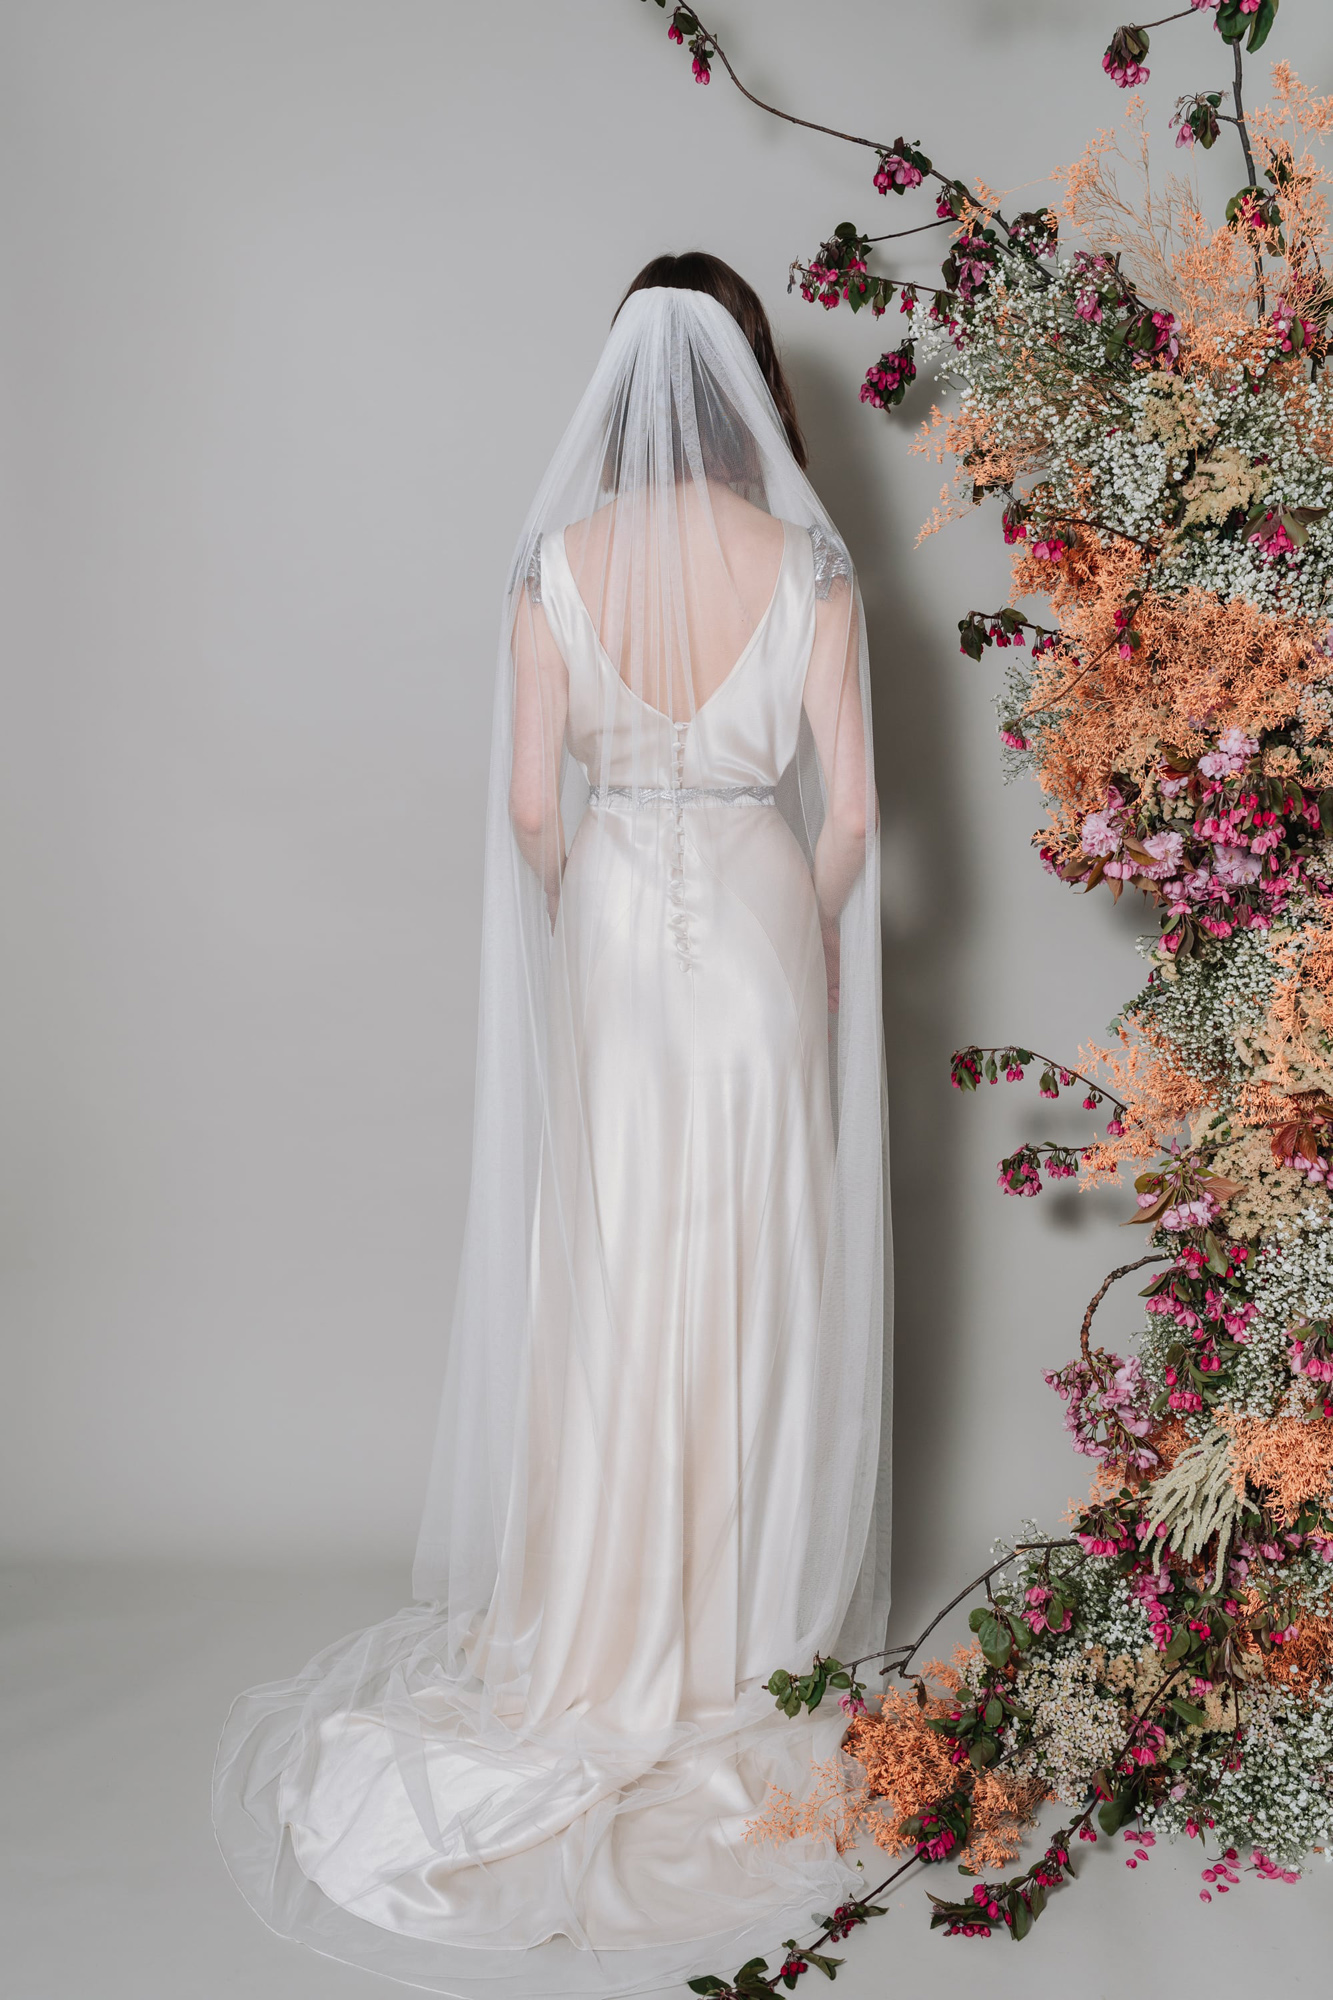 Kate-Beaumont-Sheffield-Picot-Edge-Silky-Tulle-Ethereal-Veil-7.jpg